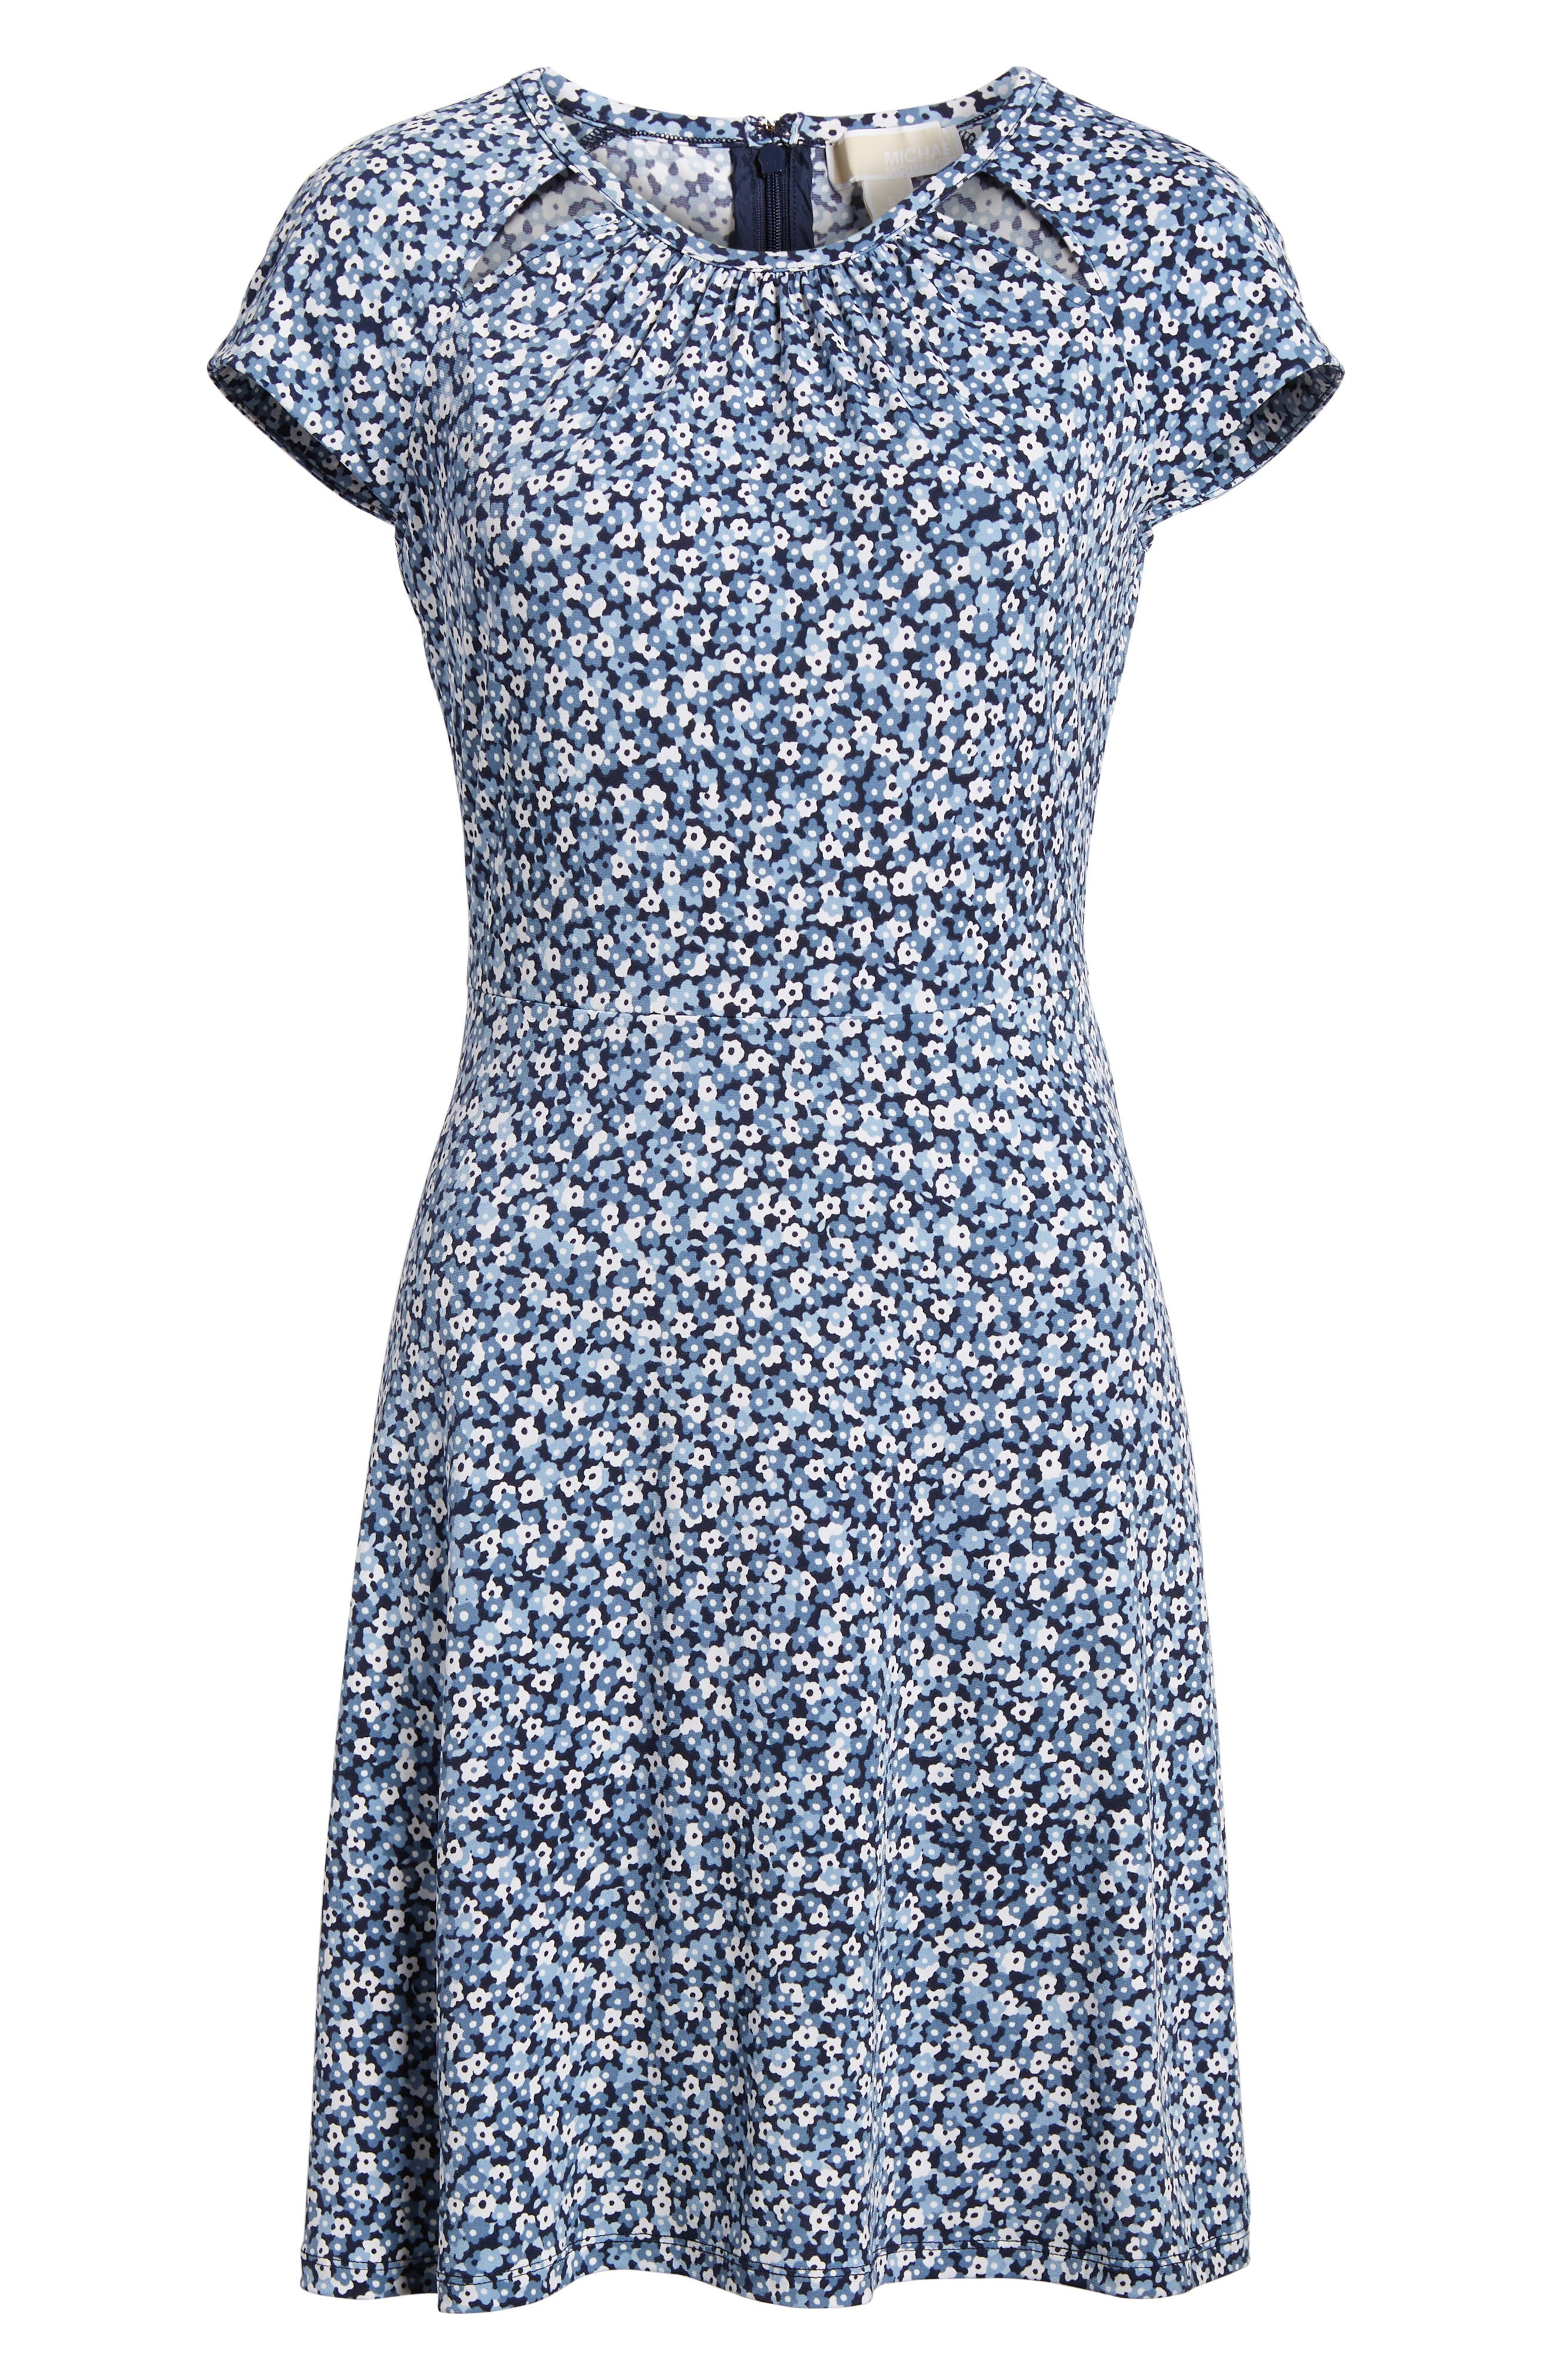 Collage Floral Double Keyhole Dress,                             Alternate thumbnail 6, color,                             True Navy/ Light Chambray